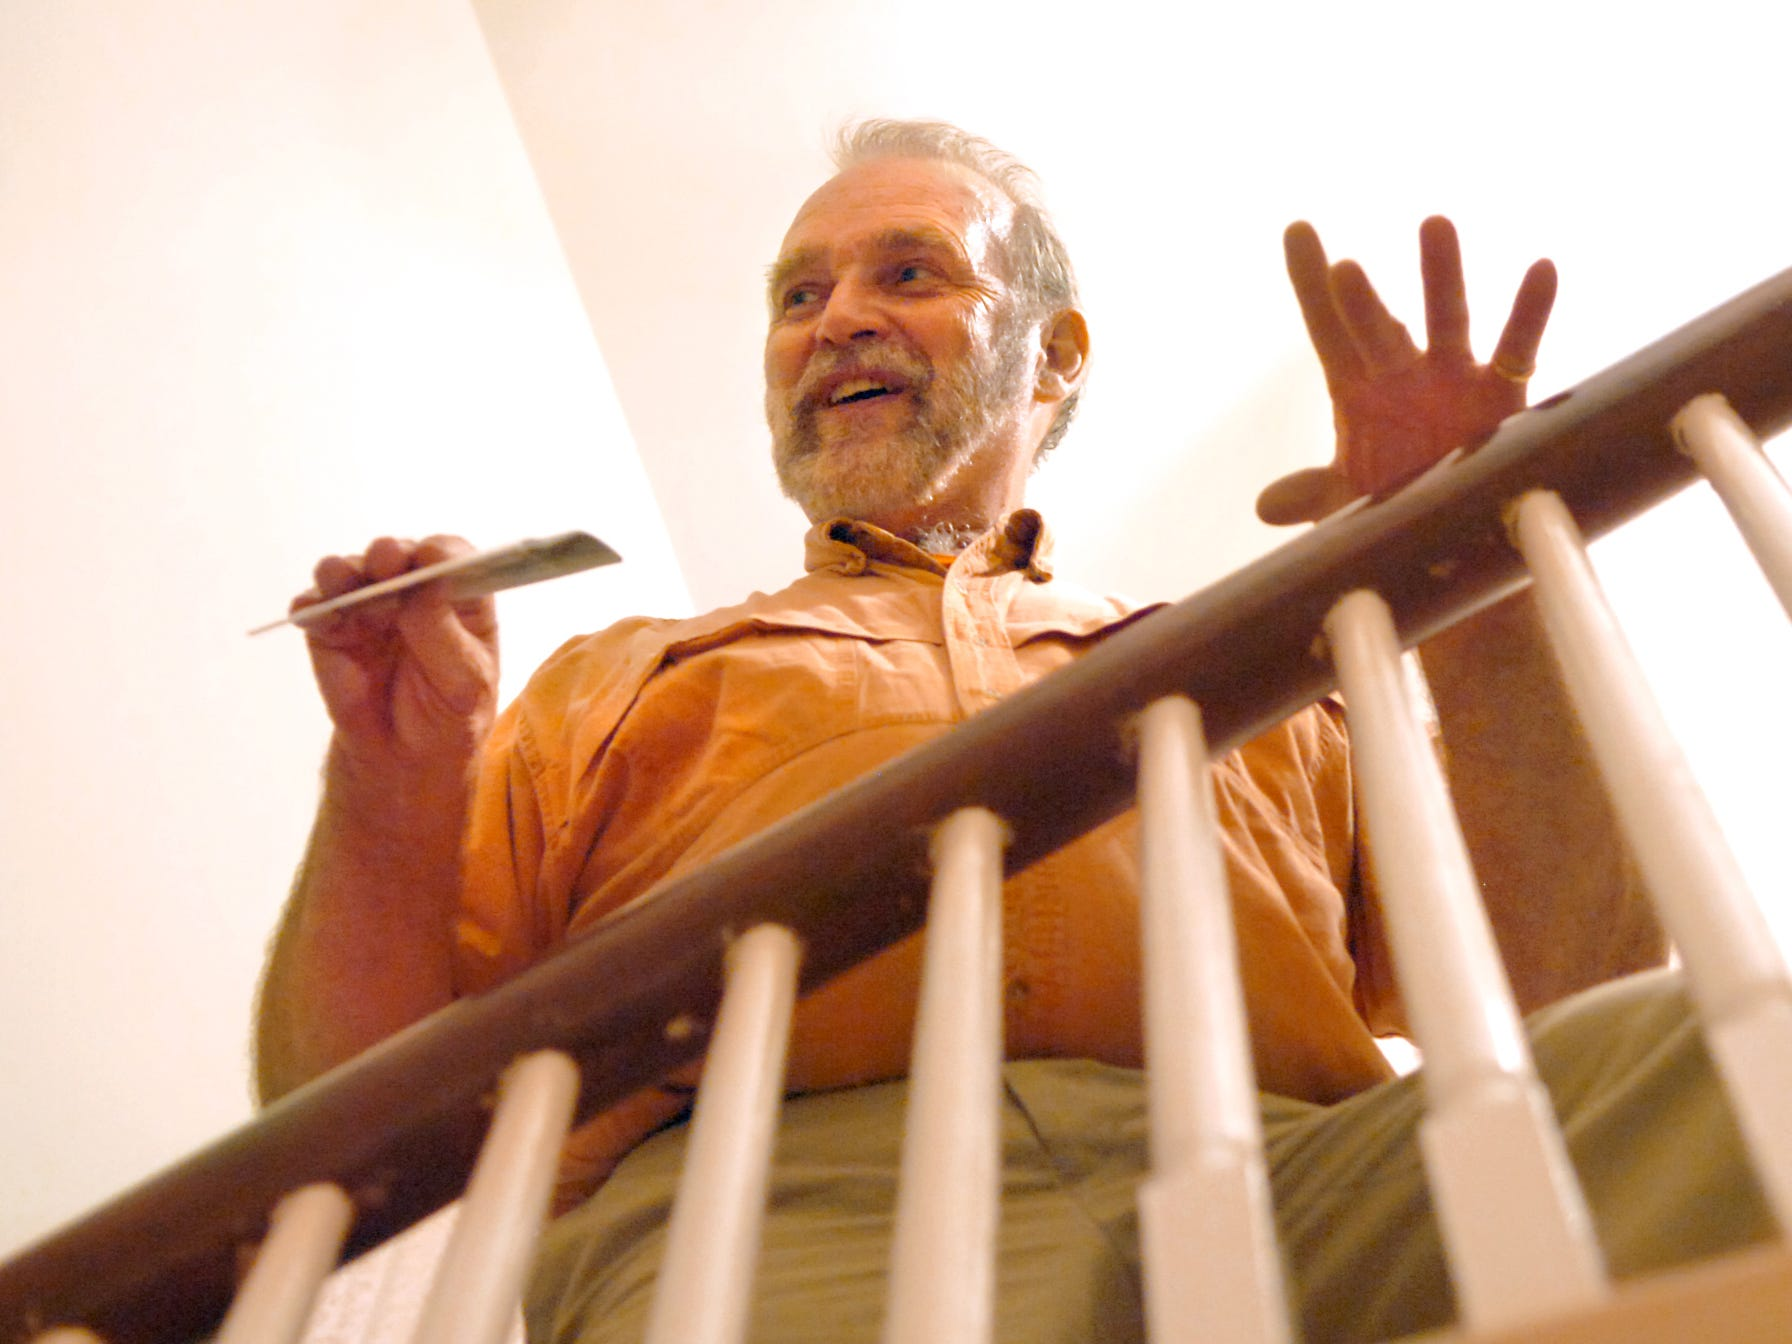 Richard Kraus, 59, of Etters, delighted in giving a tour of the Elmwood Mansion in Spring Garden Township in 2007, including tales of lots of ghostly encounters he experienced while living there in the 1980s. This staircase is where Kraus would hear phantom footsteps and where others saw the apparition of a Confederate soldier. Kraus lived in the mansion from 1981-1986.